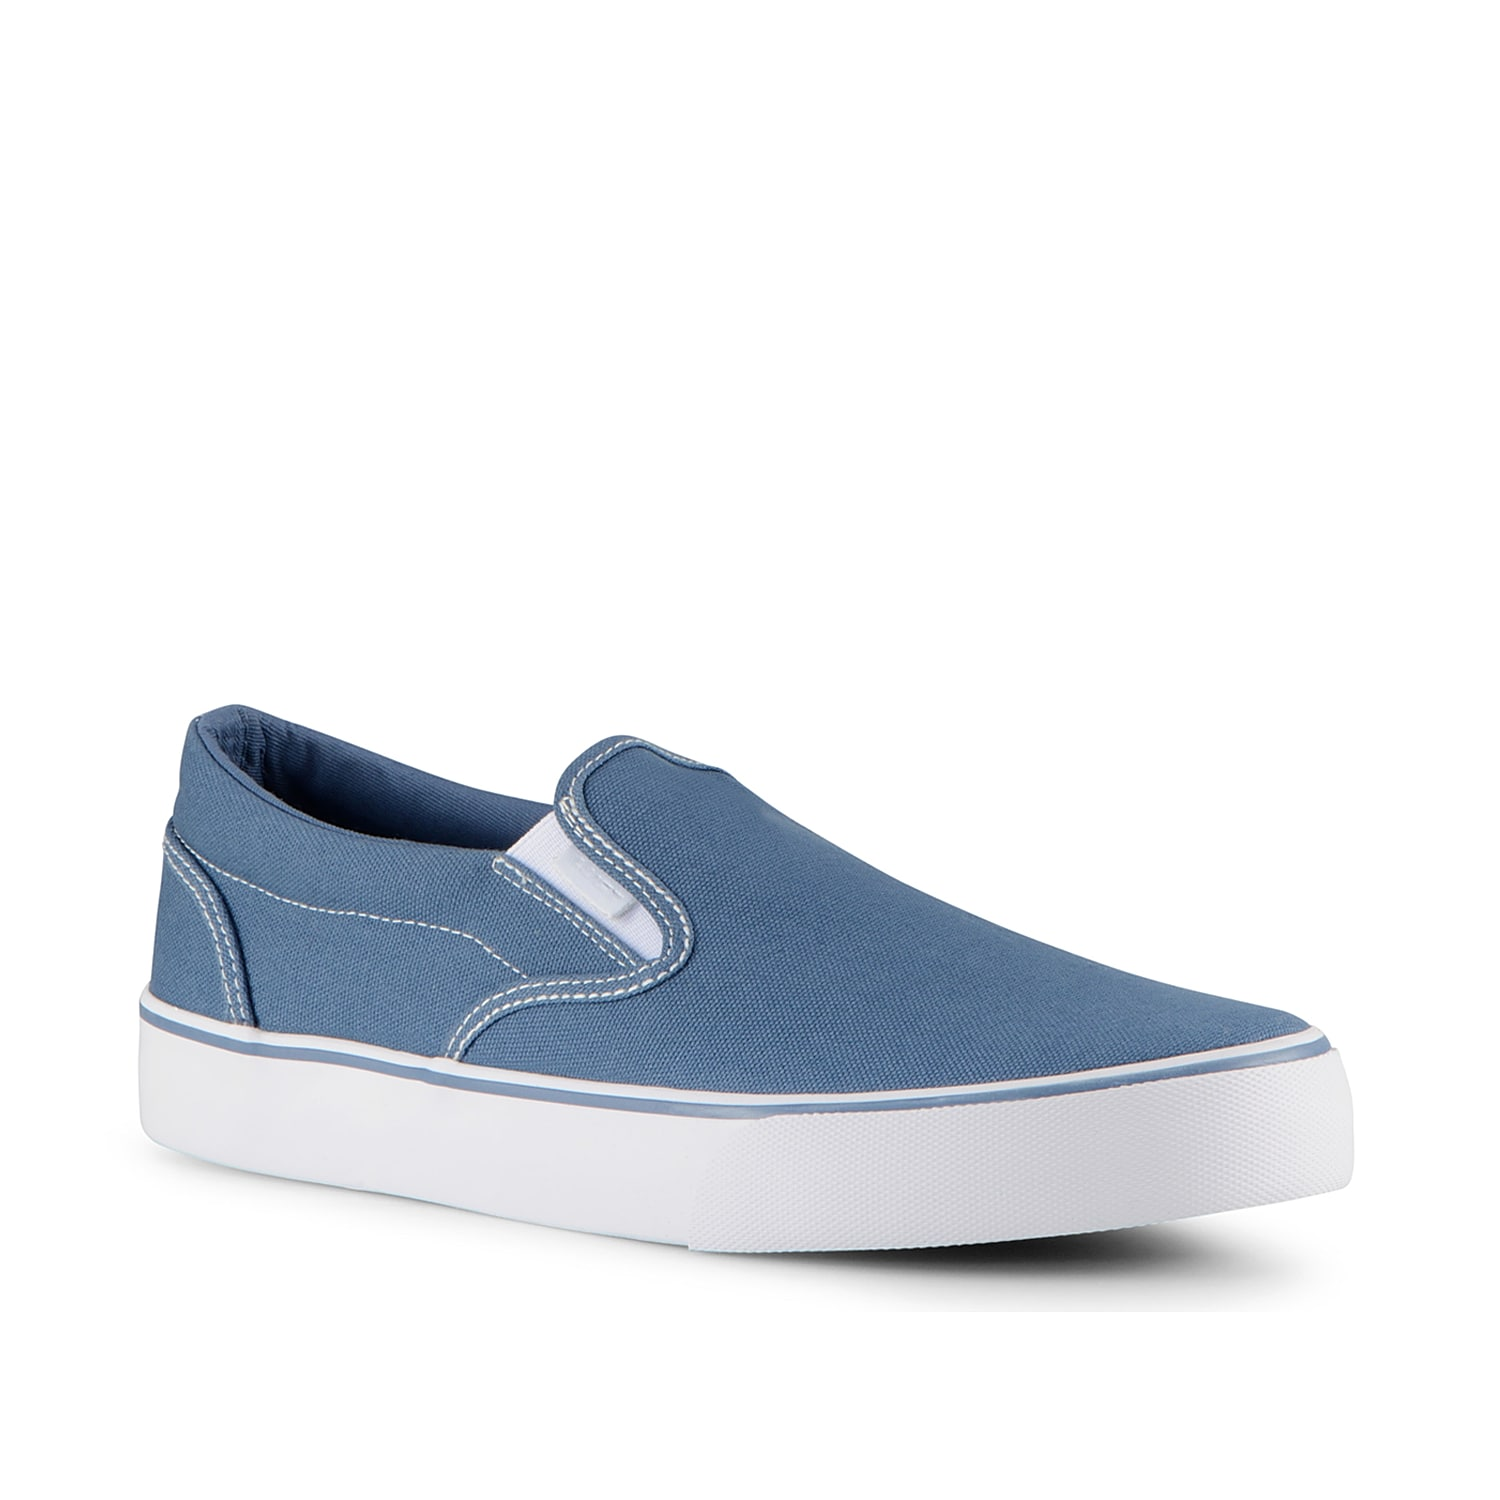 Slip into classic style with the Clipper 2 sneaker from Lugz. This slip-on sneaker features a sporty vulcanized sole and padded footbed for your new favorite pair!